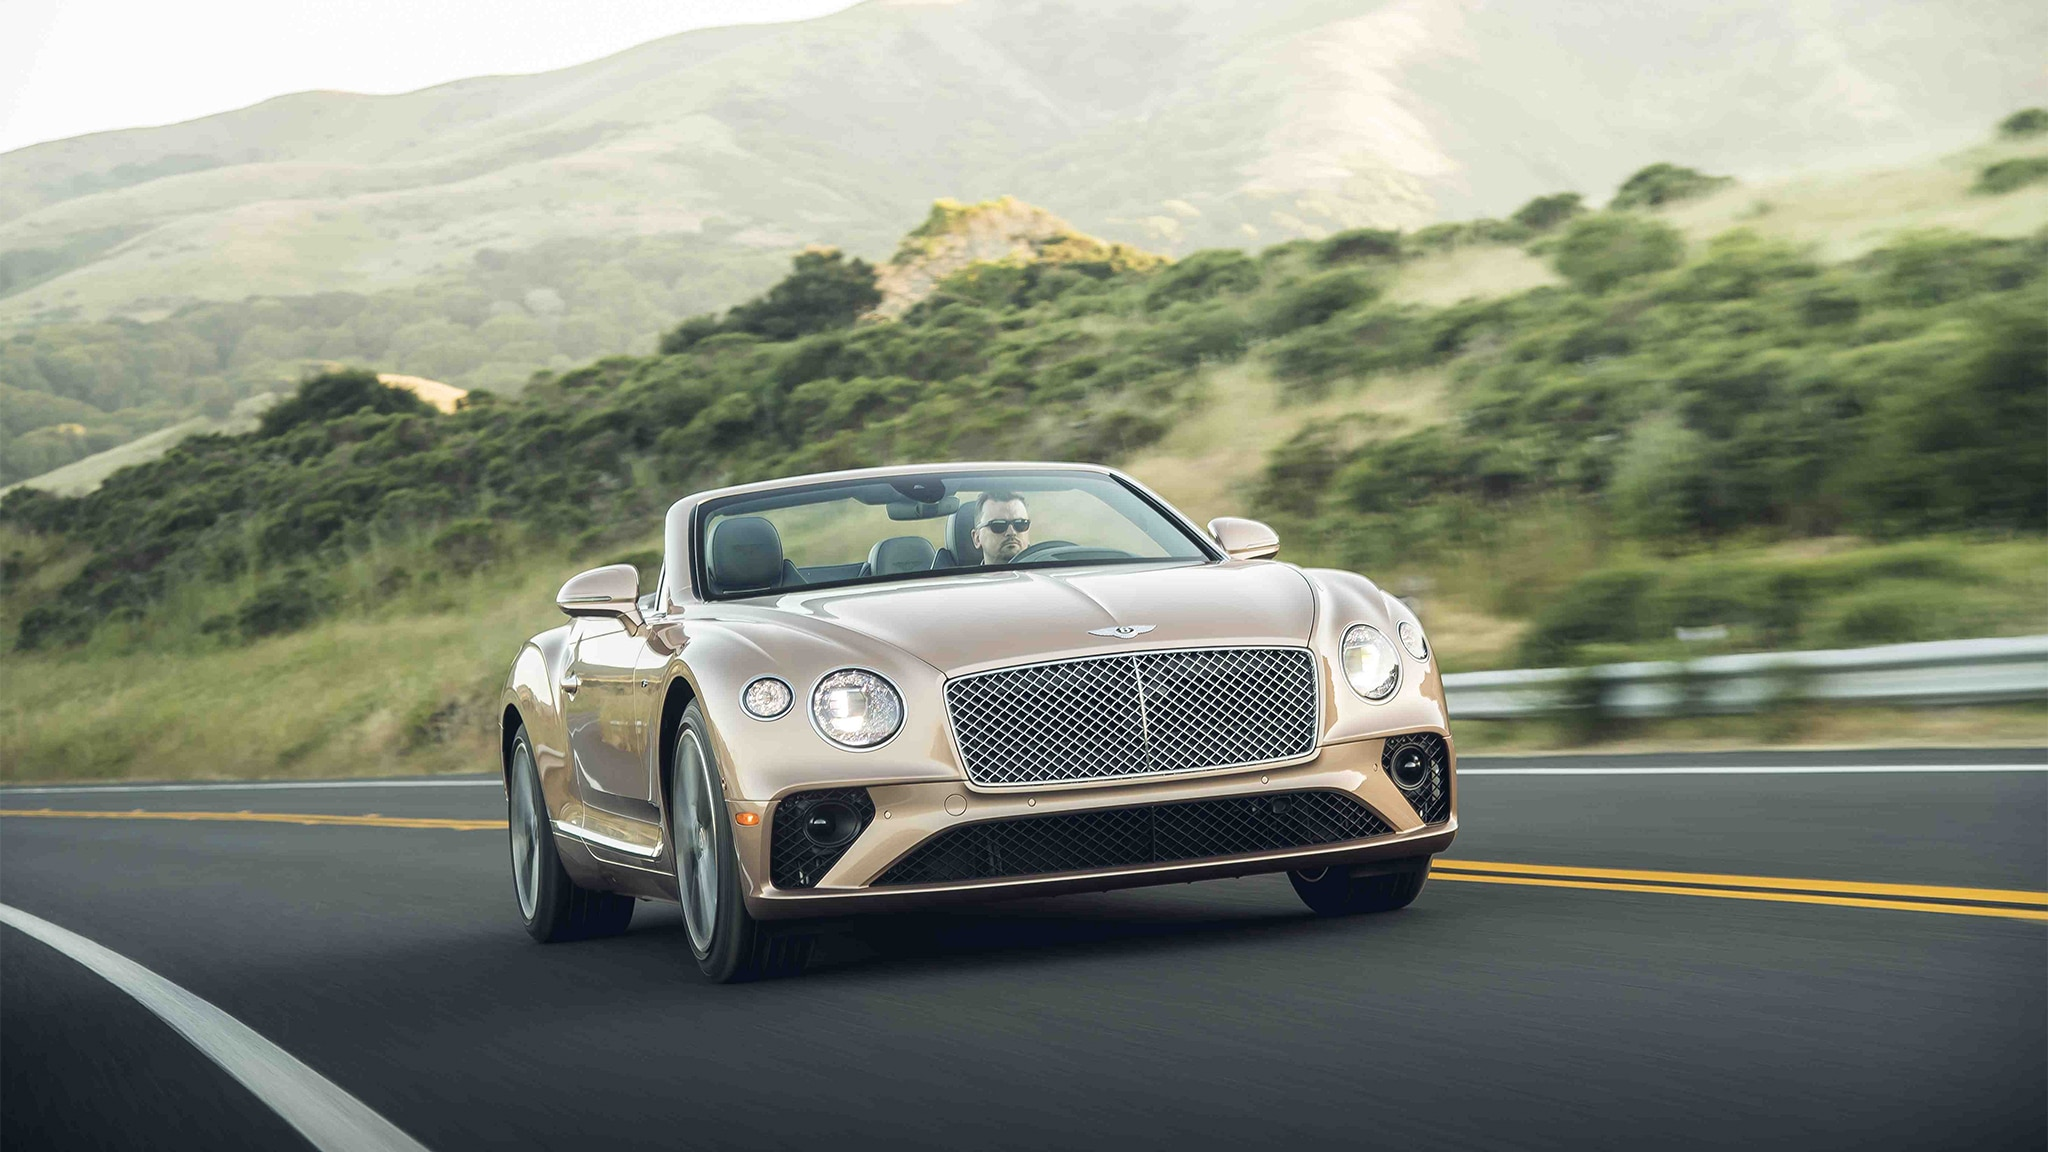 2020 Bentley Continental GT V8 First Drive: The One We'd ...